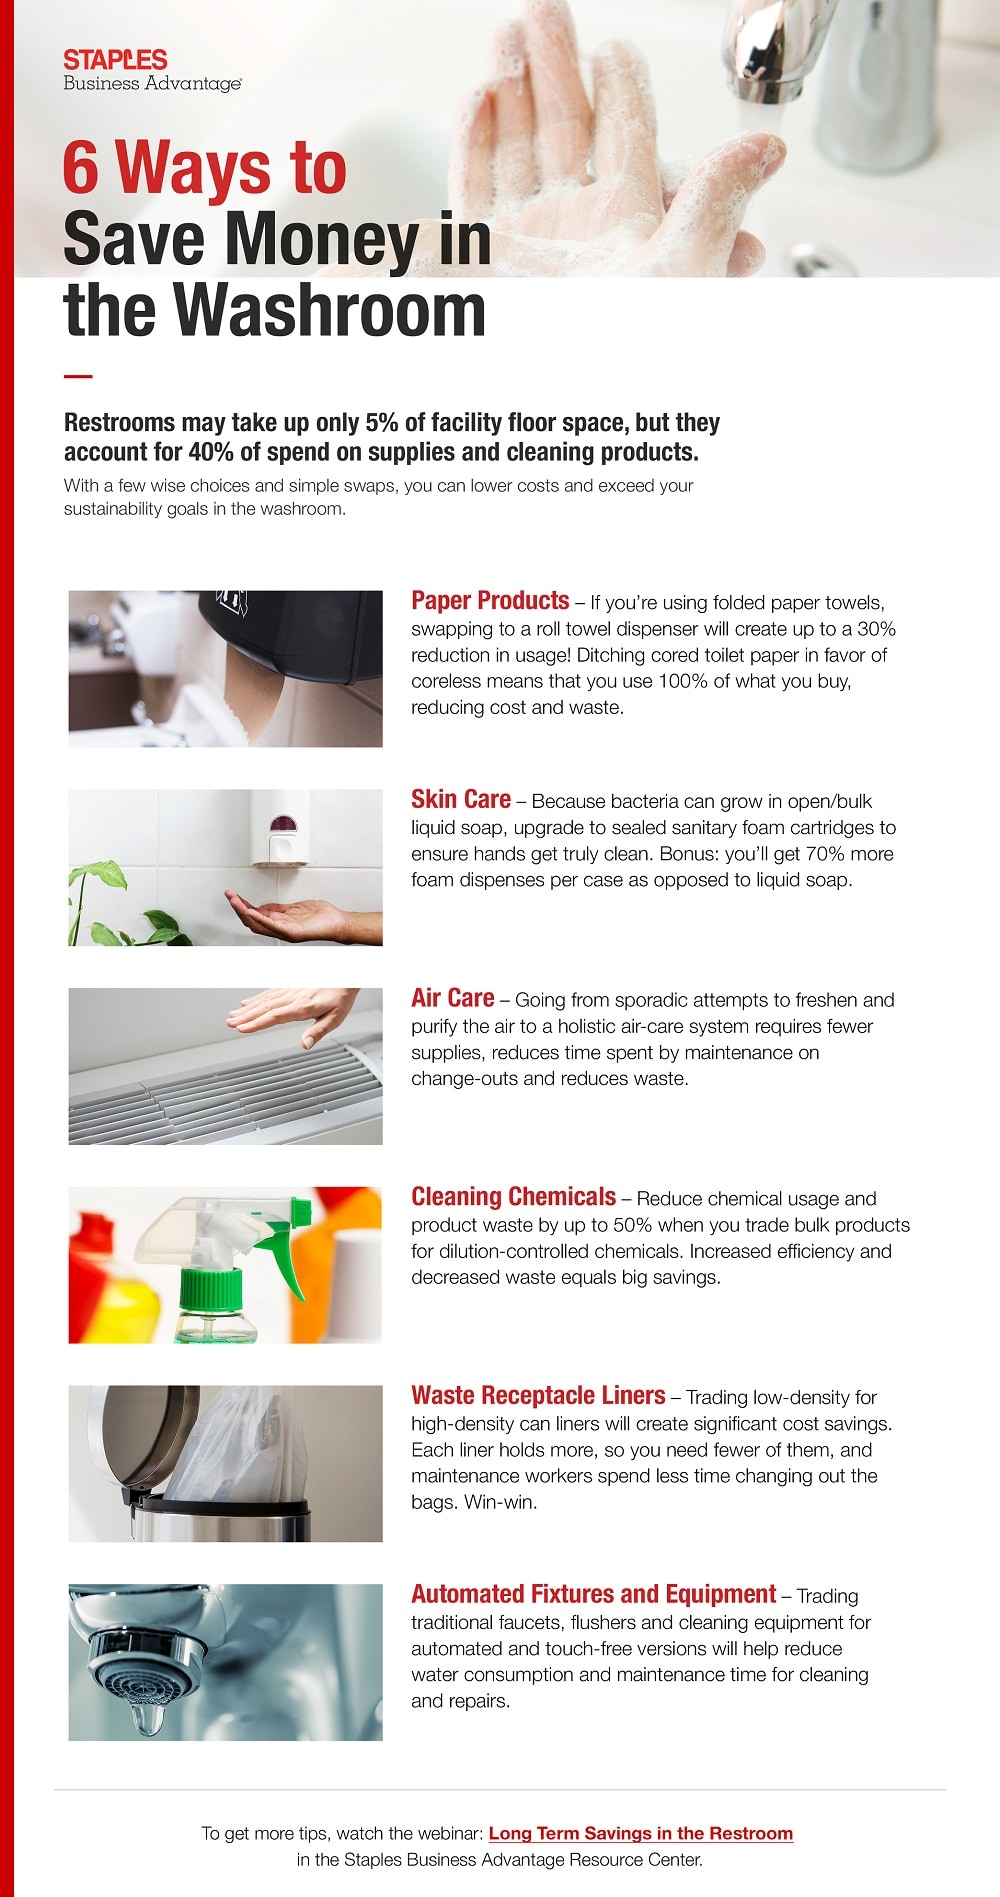 6 Ways to Cut Costs for Restroom Supplies